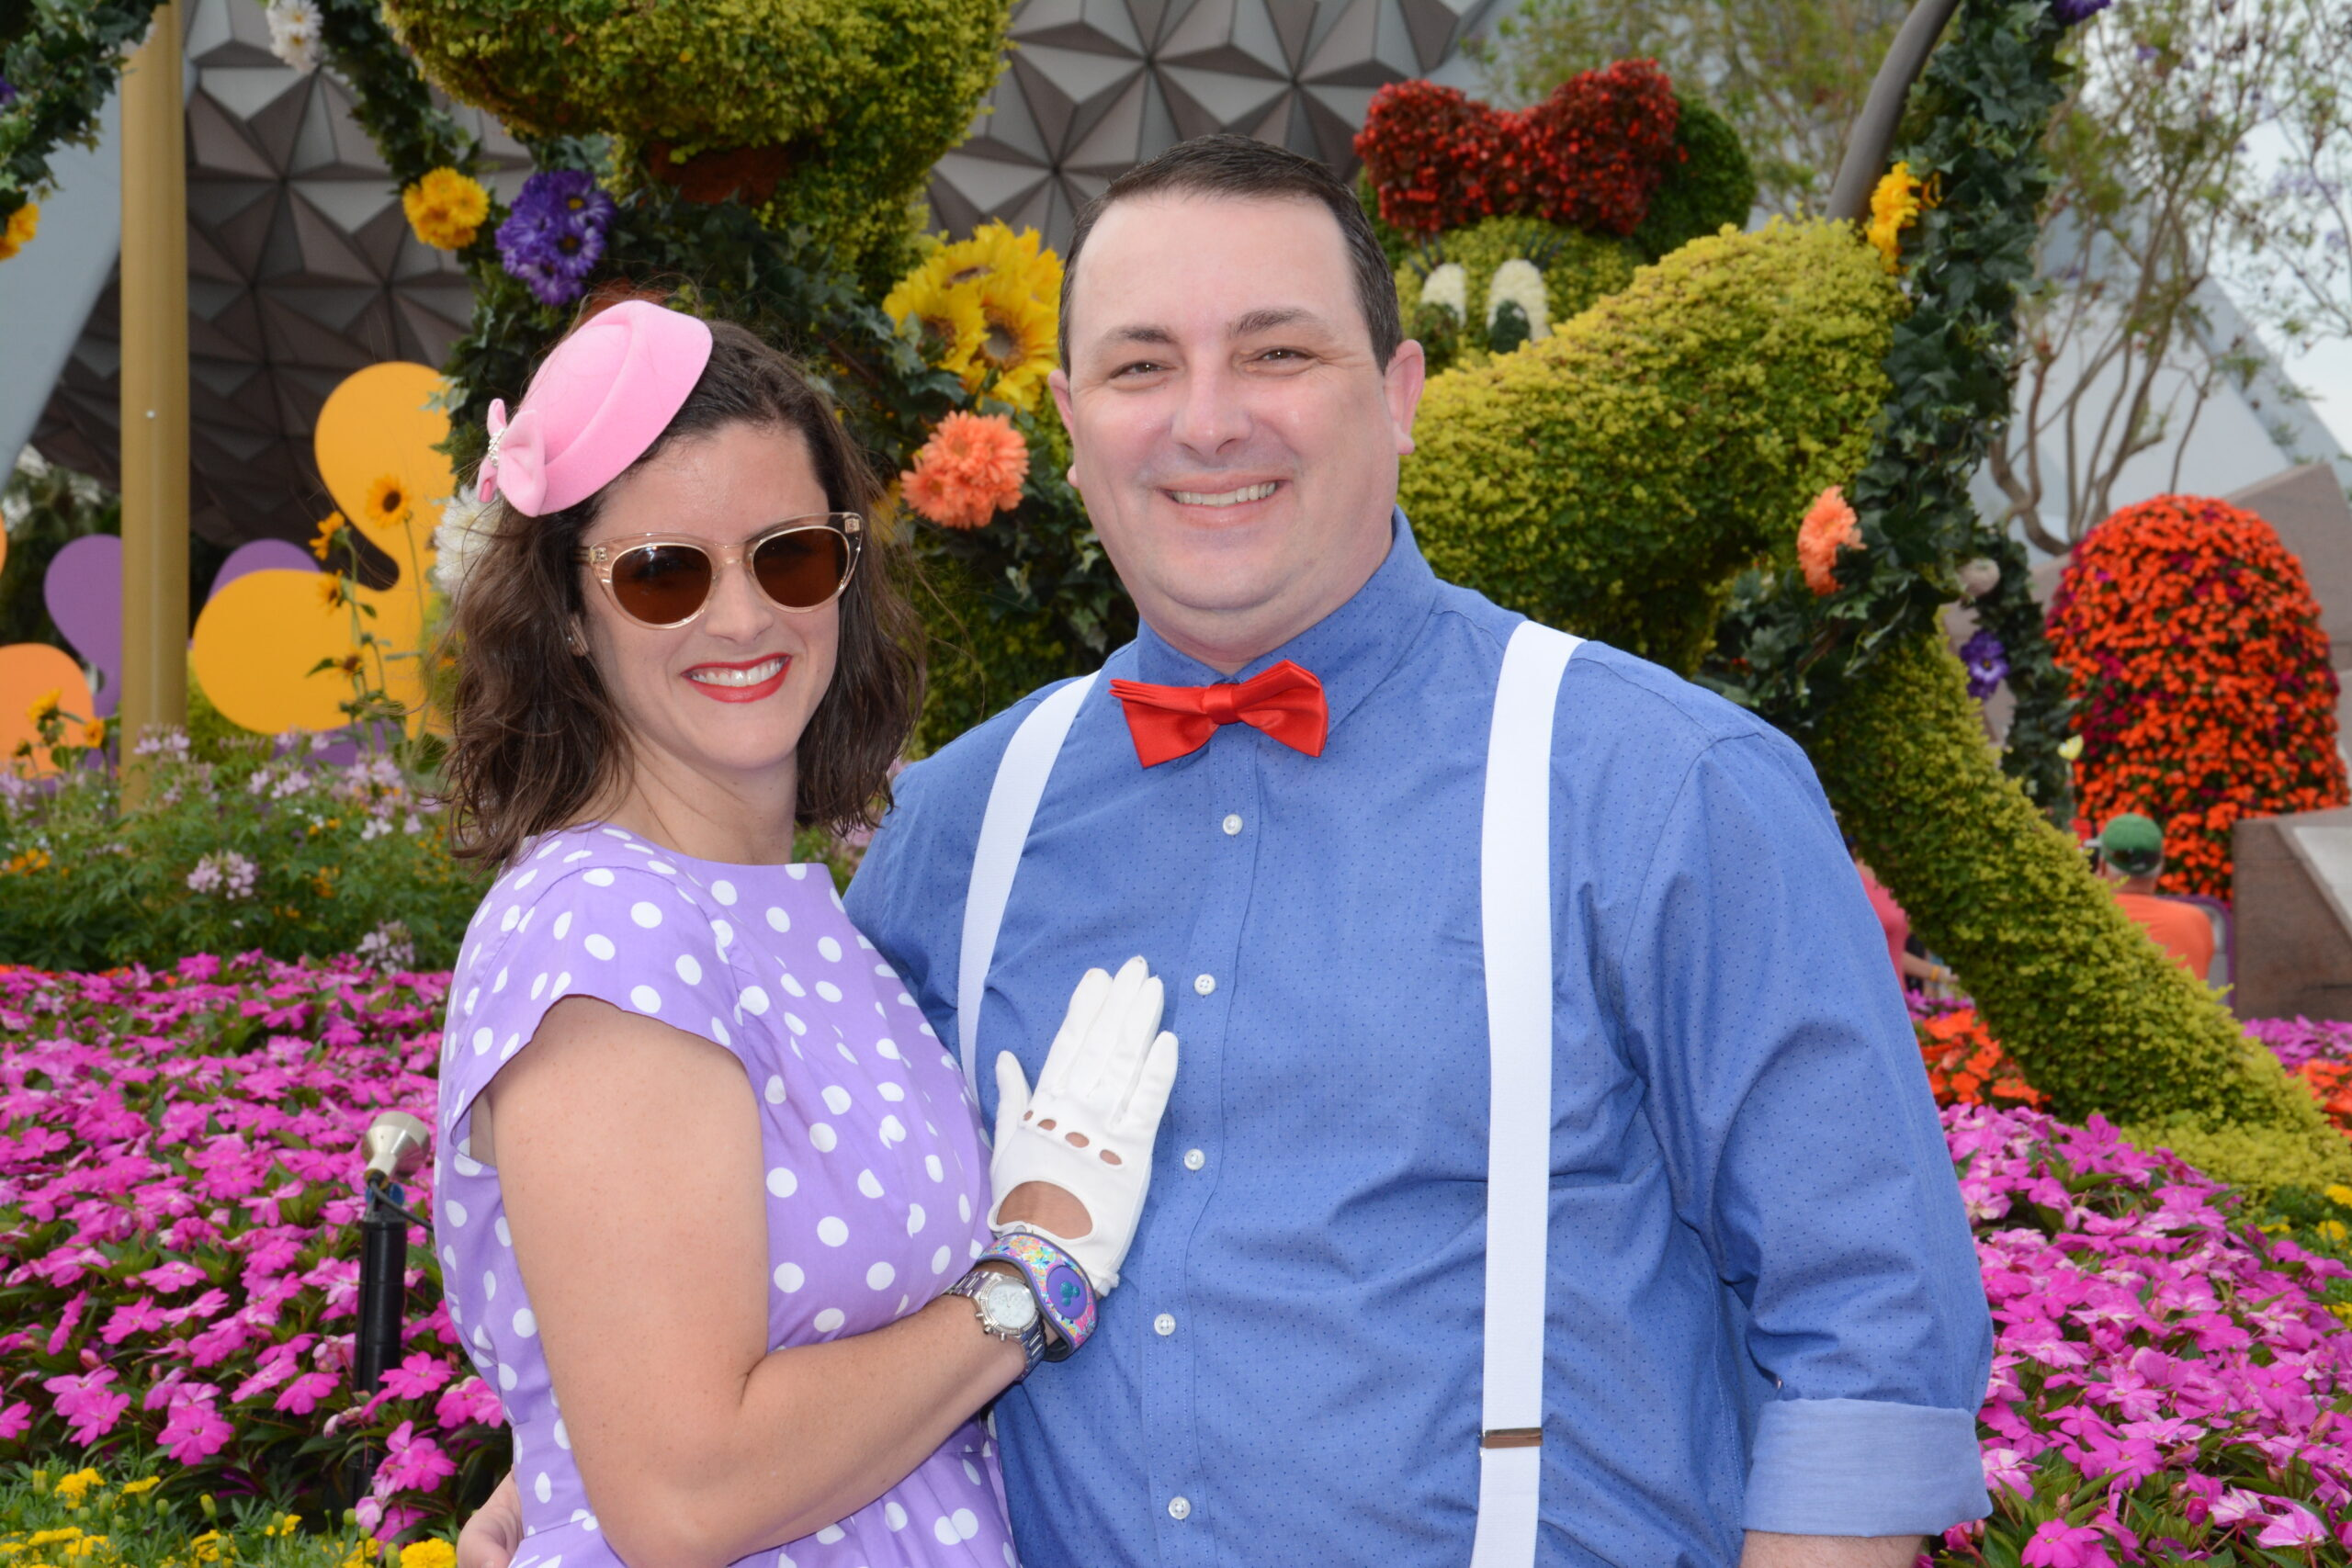 Husband and wife dressed in Disneybound outfits